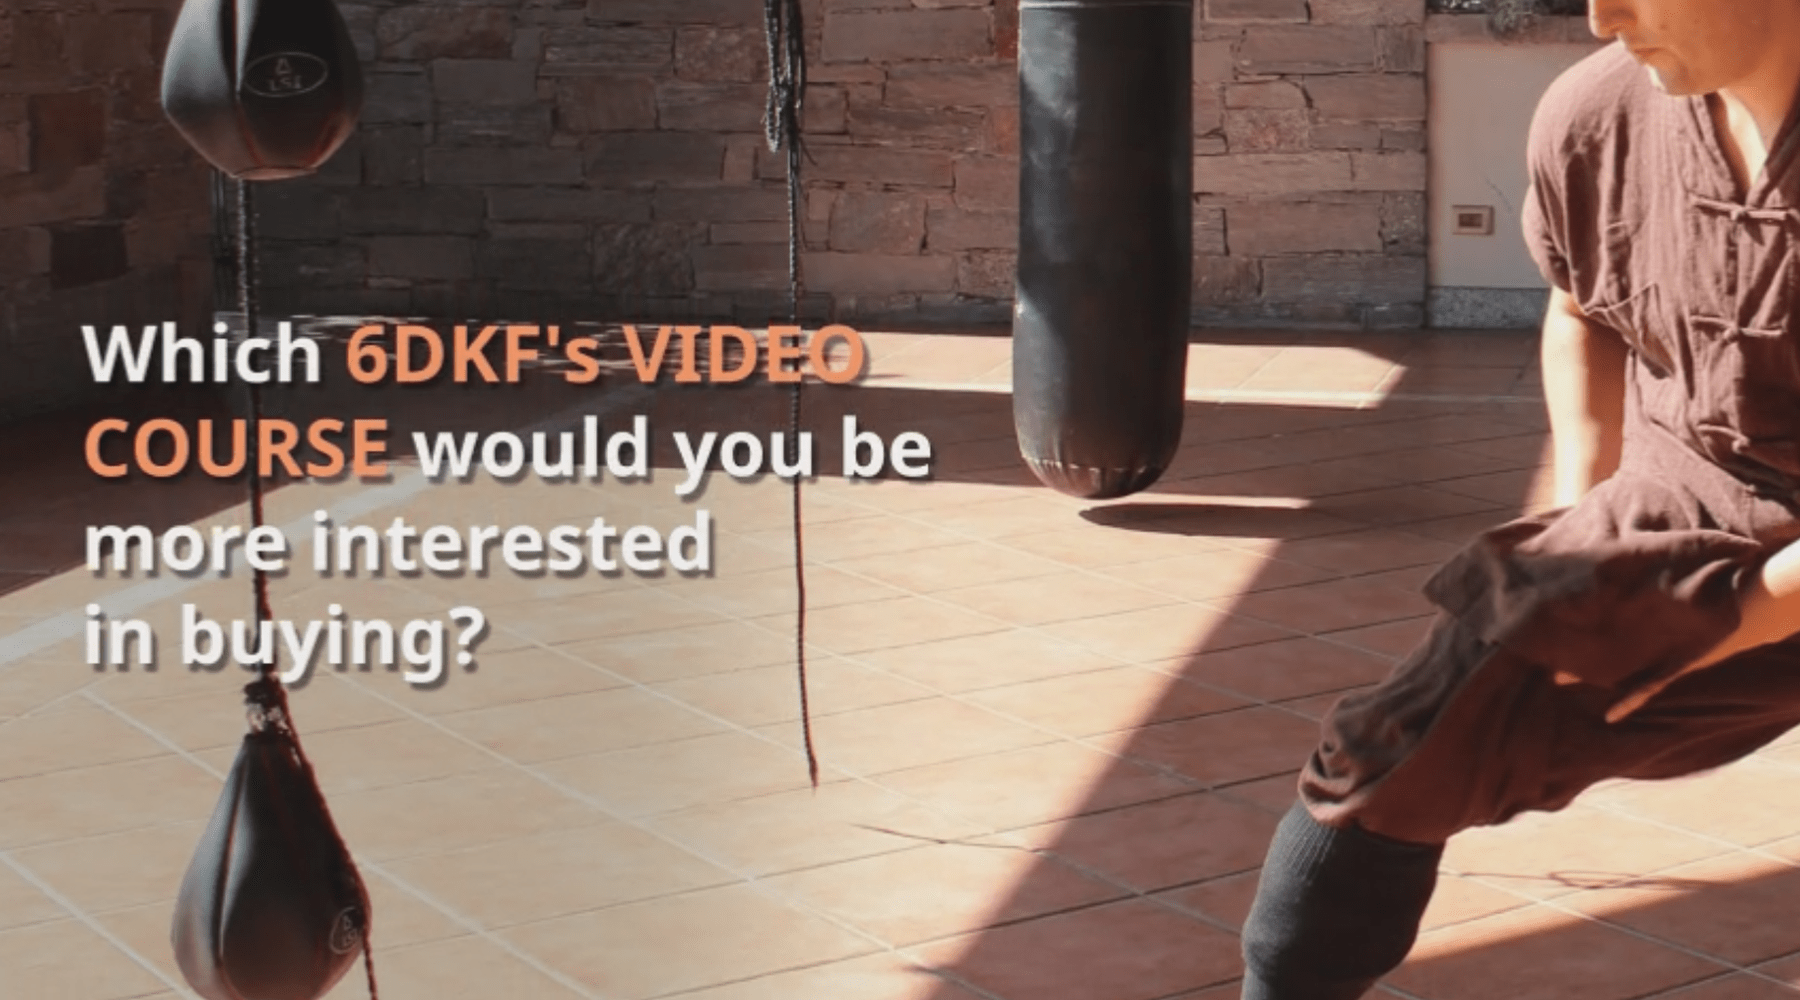 6 Dragons Kung fu video courses: the poll